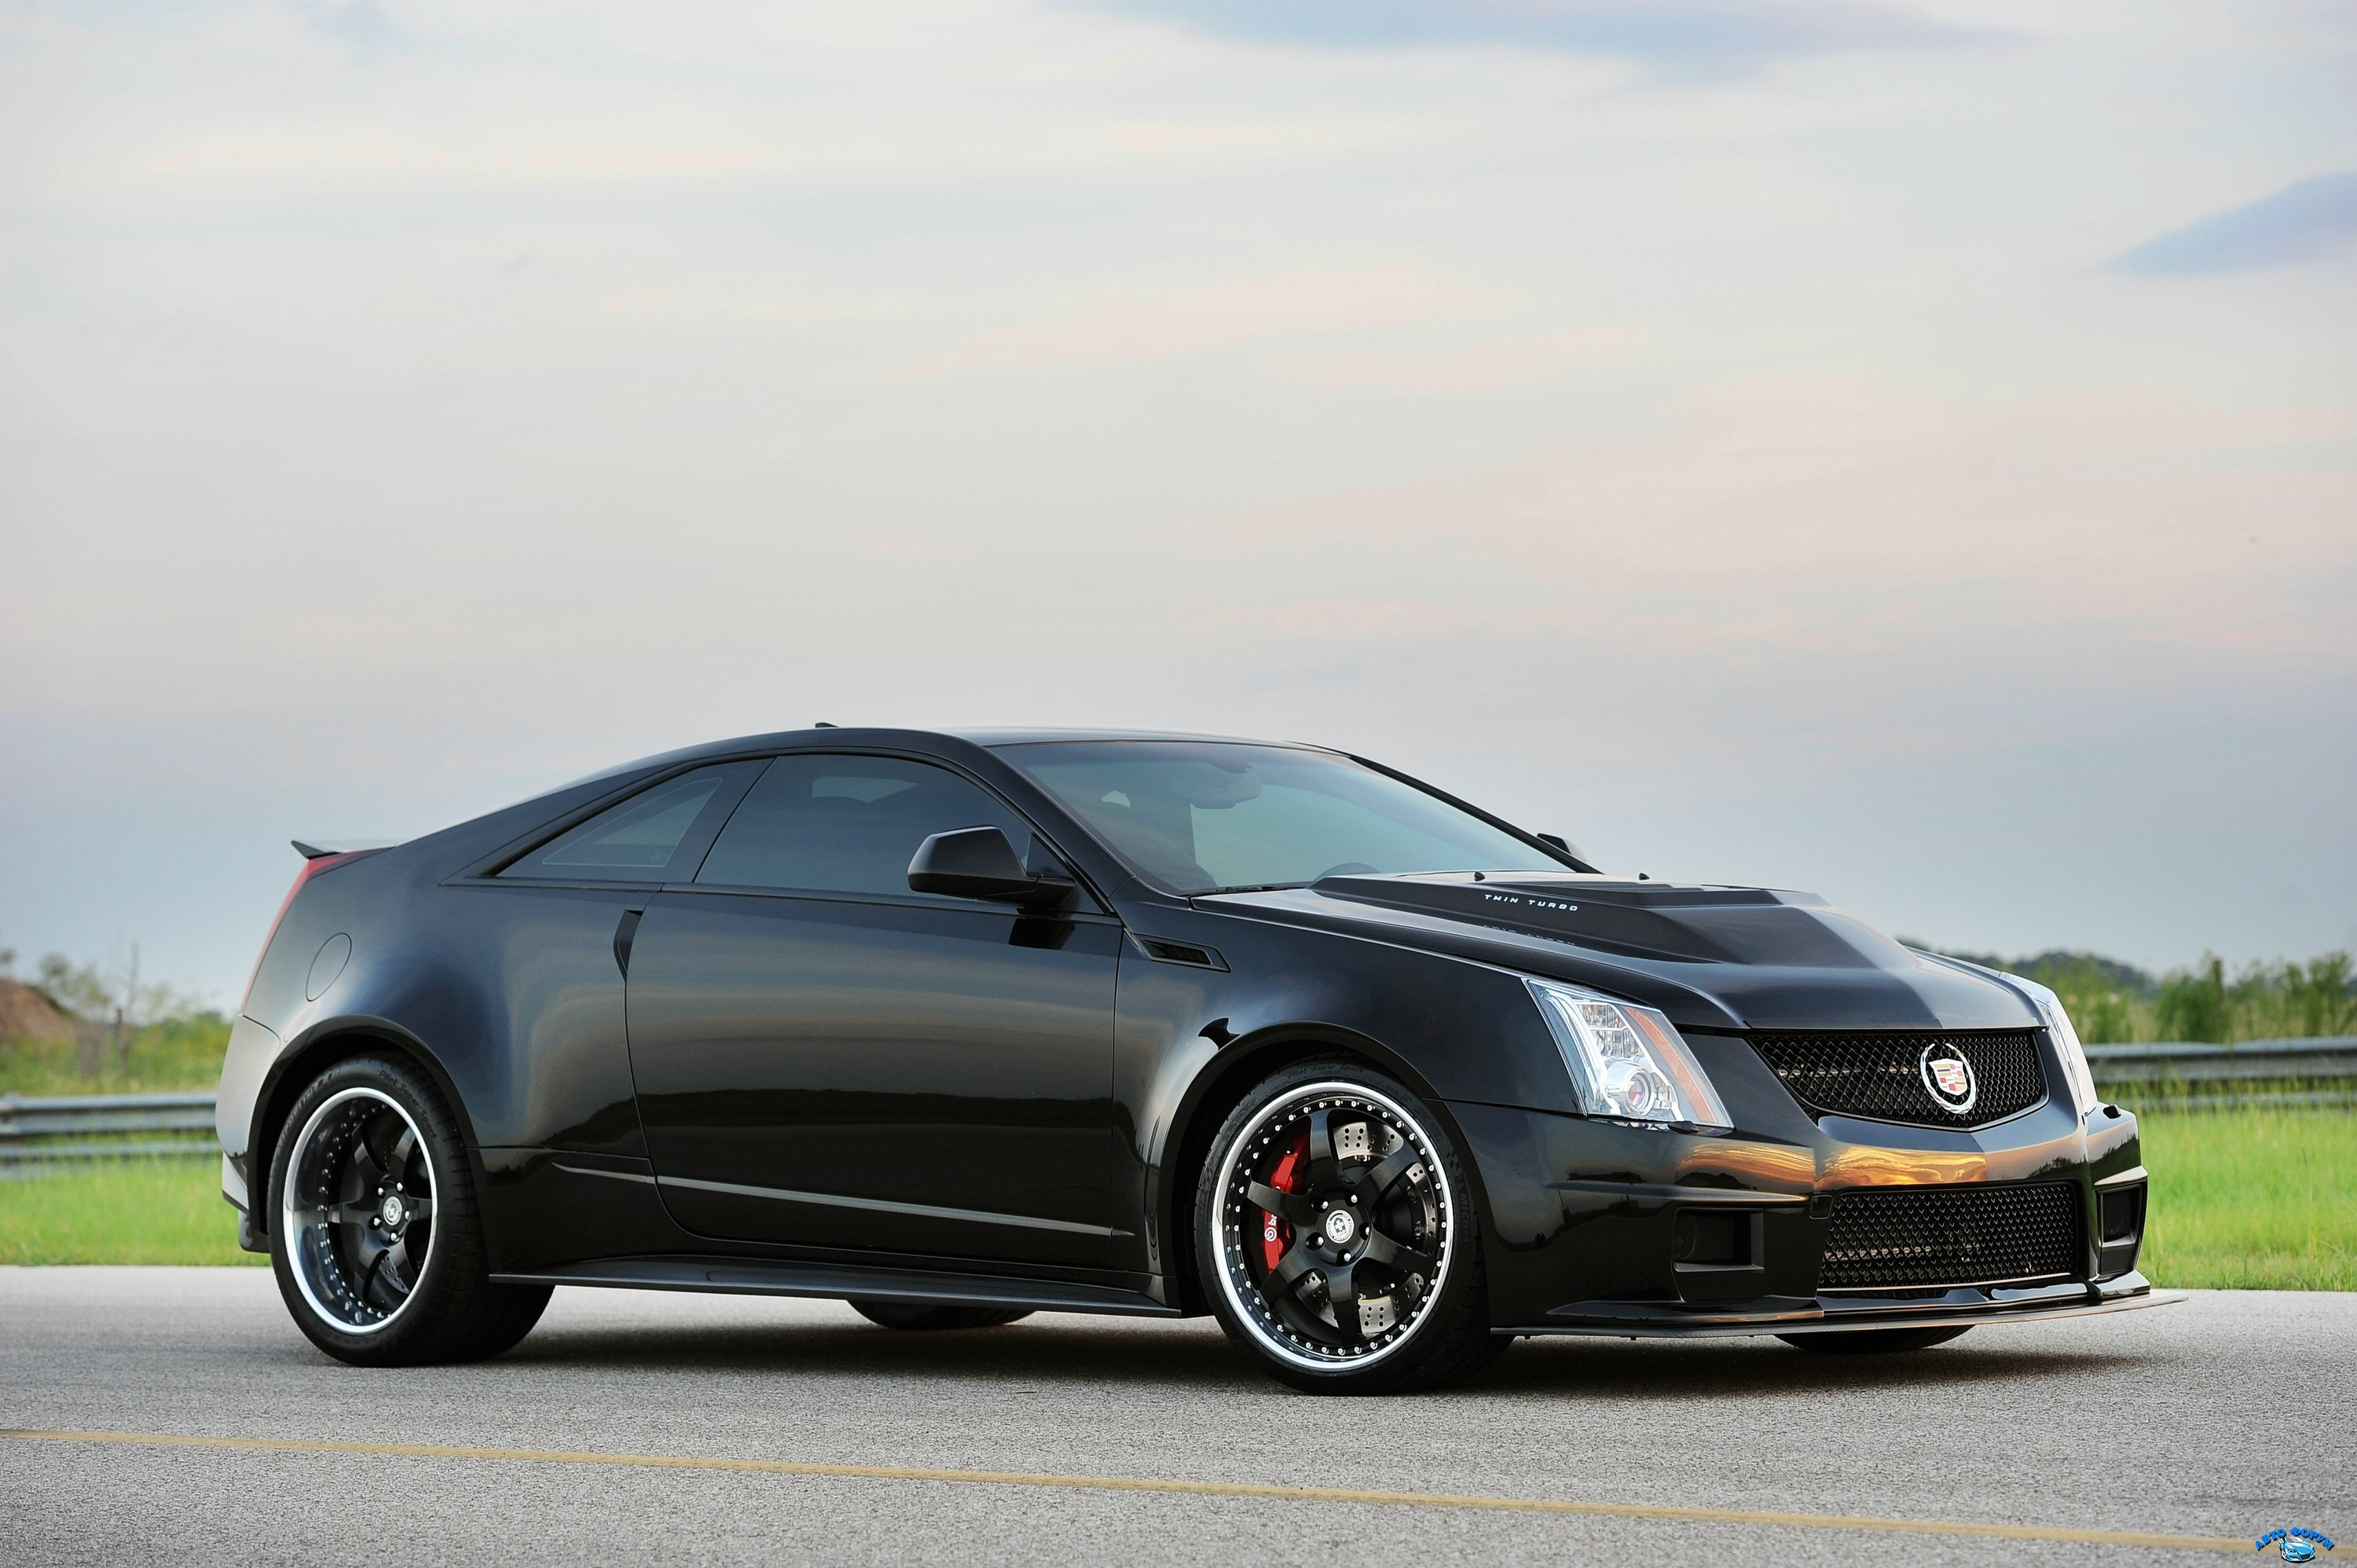 hennessey_cadillac_vr1200_twin_turbo_coupe_14.jpg